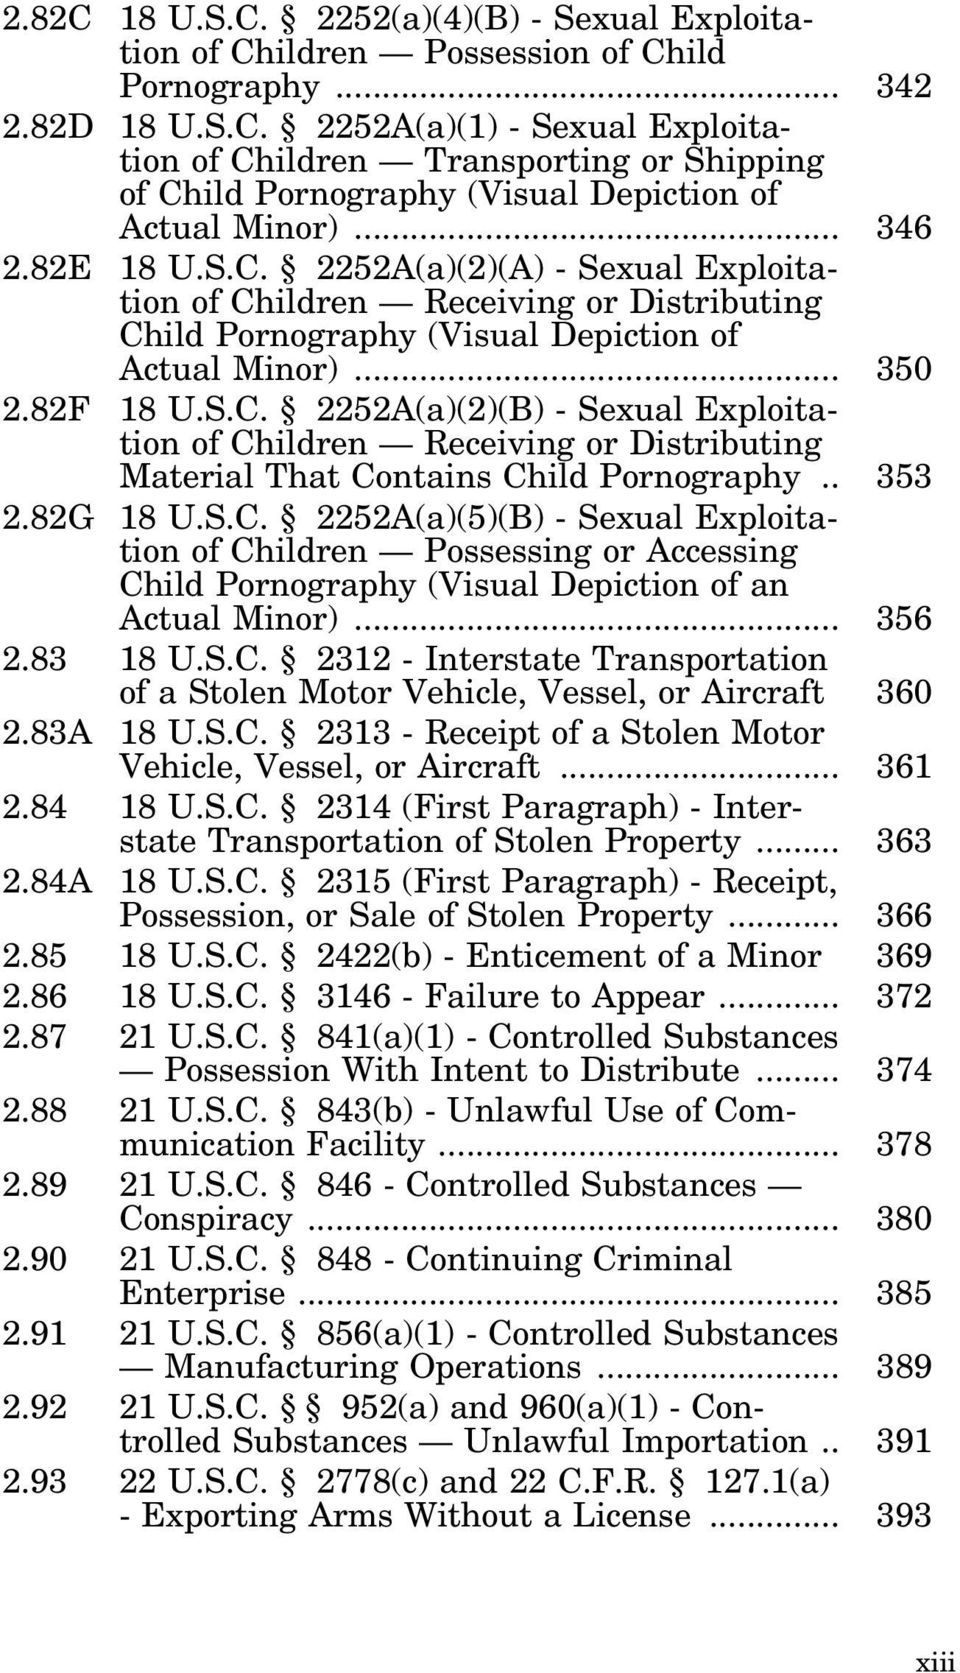 . 353 2.82G 18 U.S.C. 2252A(a)(5)(B) - Sexual Exploitation of Children Possessing or Accessing Child Pornography (Visual Depiction of an Actual Minor)... 356 2.83 18 U.S.C. 2312 - Interstate Transportation of a Stolen Motor Vehicle, Vessel, or Aircraft 360 2.